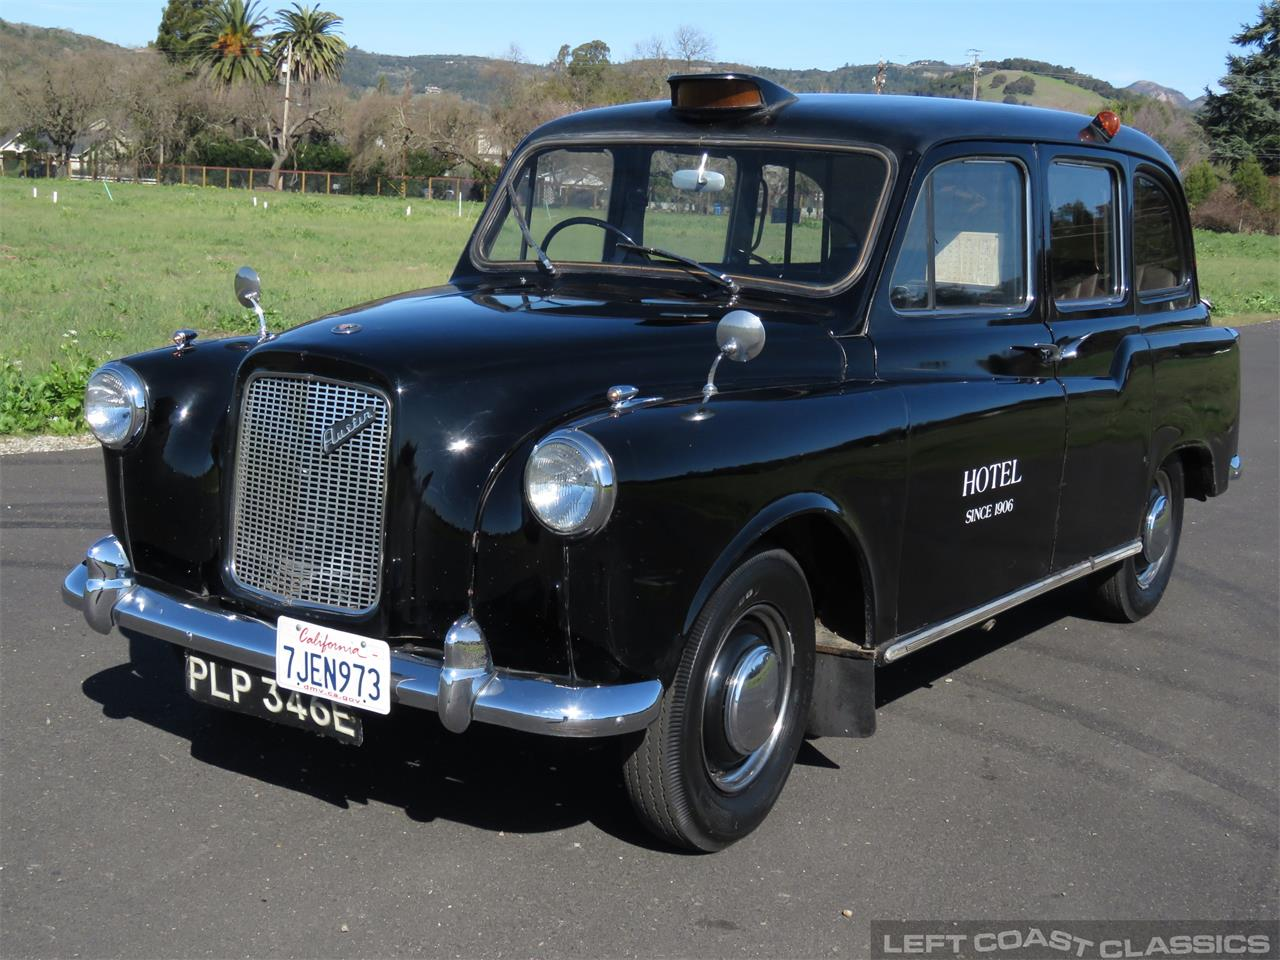 Large Picture of Classic 1967 FX4 Taxi Cab Offered by Left Coast Classics - PKBX